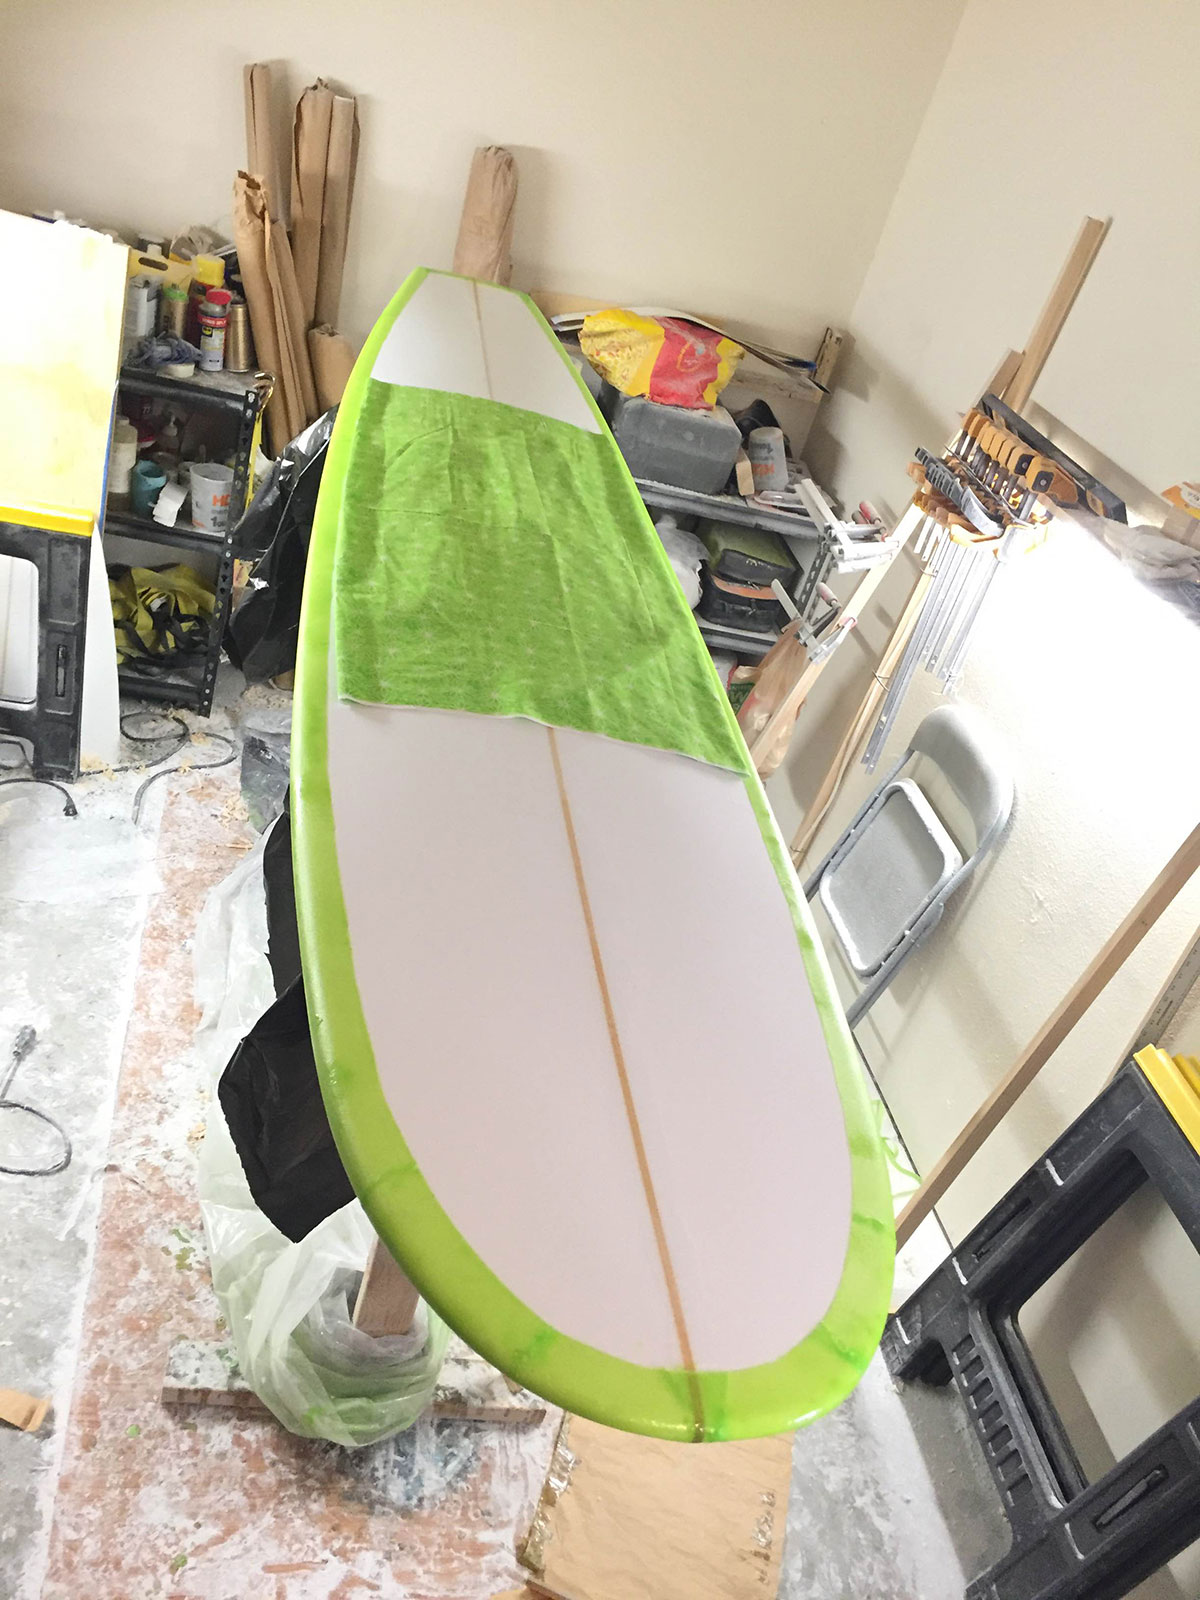 shaping-surfboard5